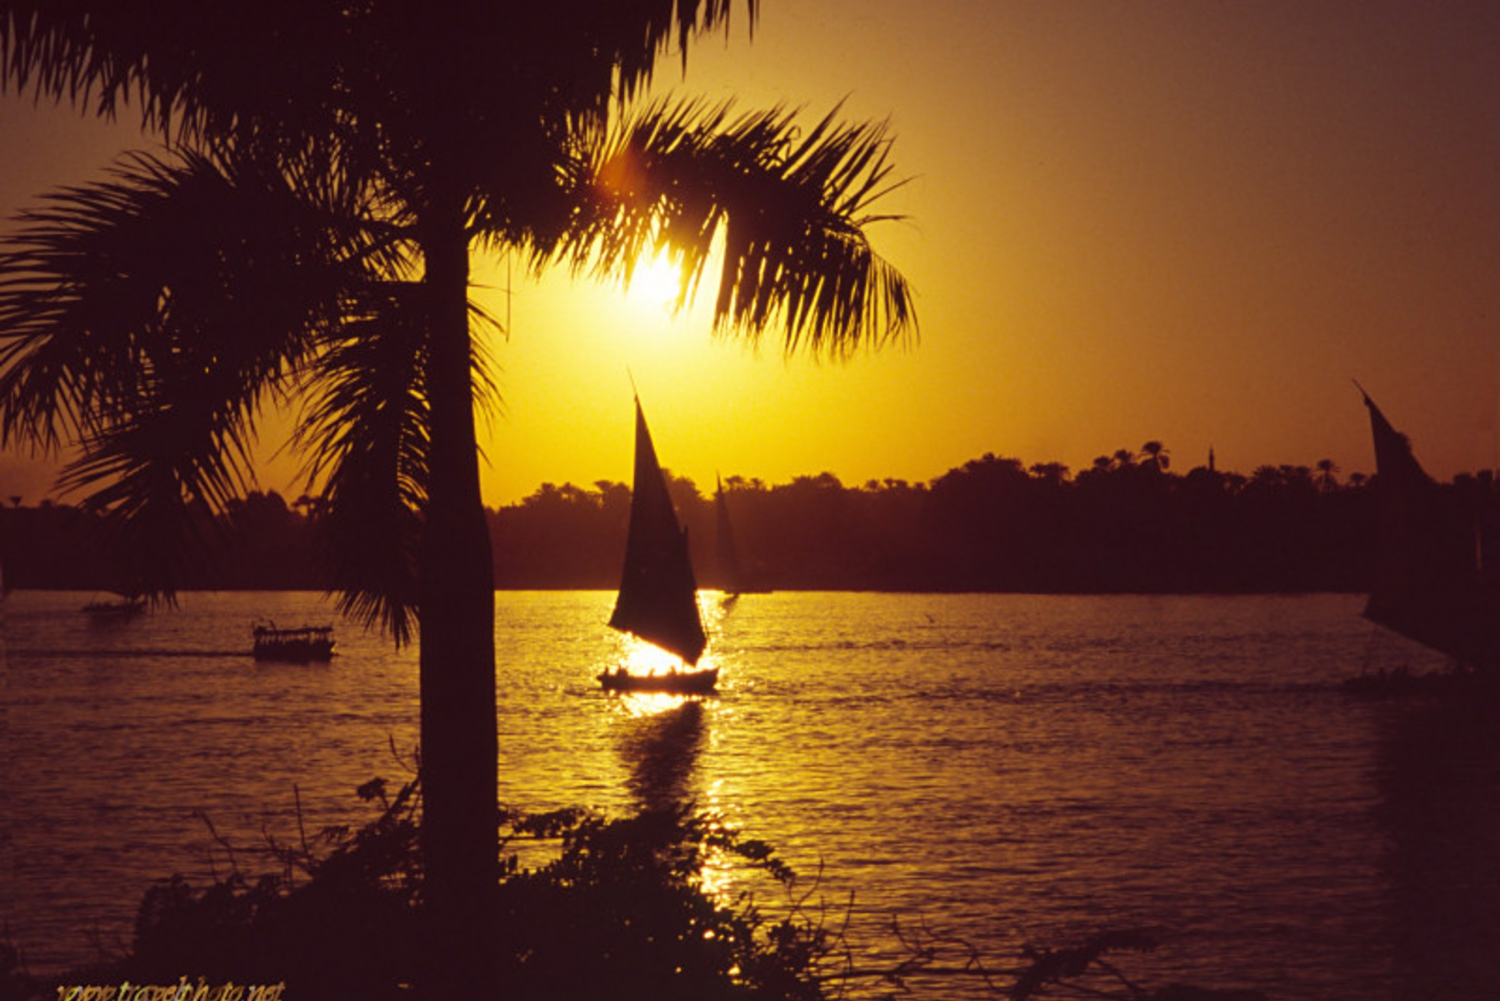 1-Hour Felucca Ride on the Nile